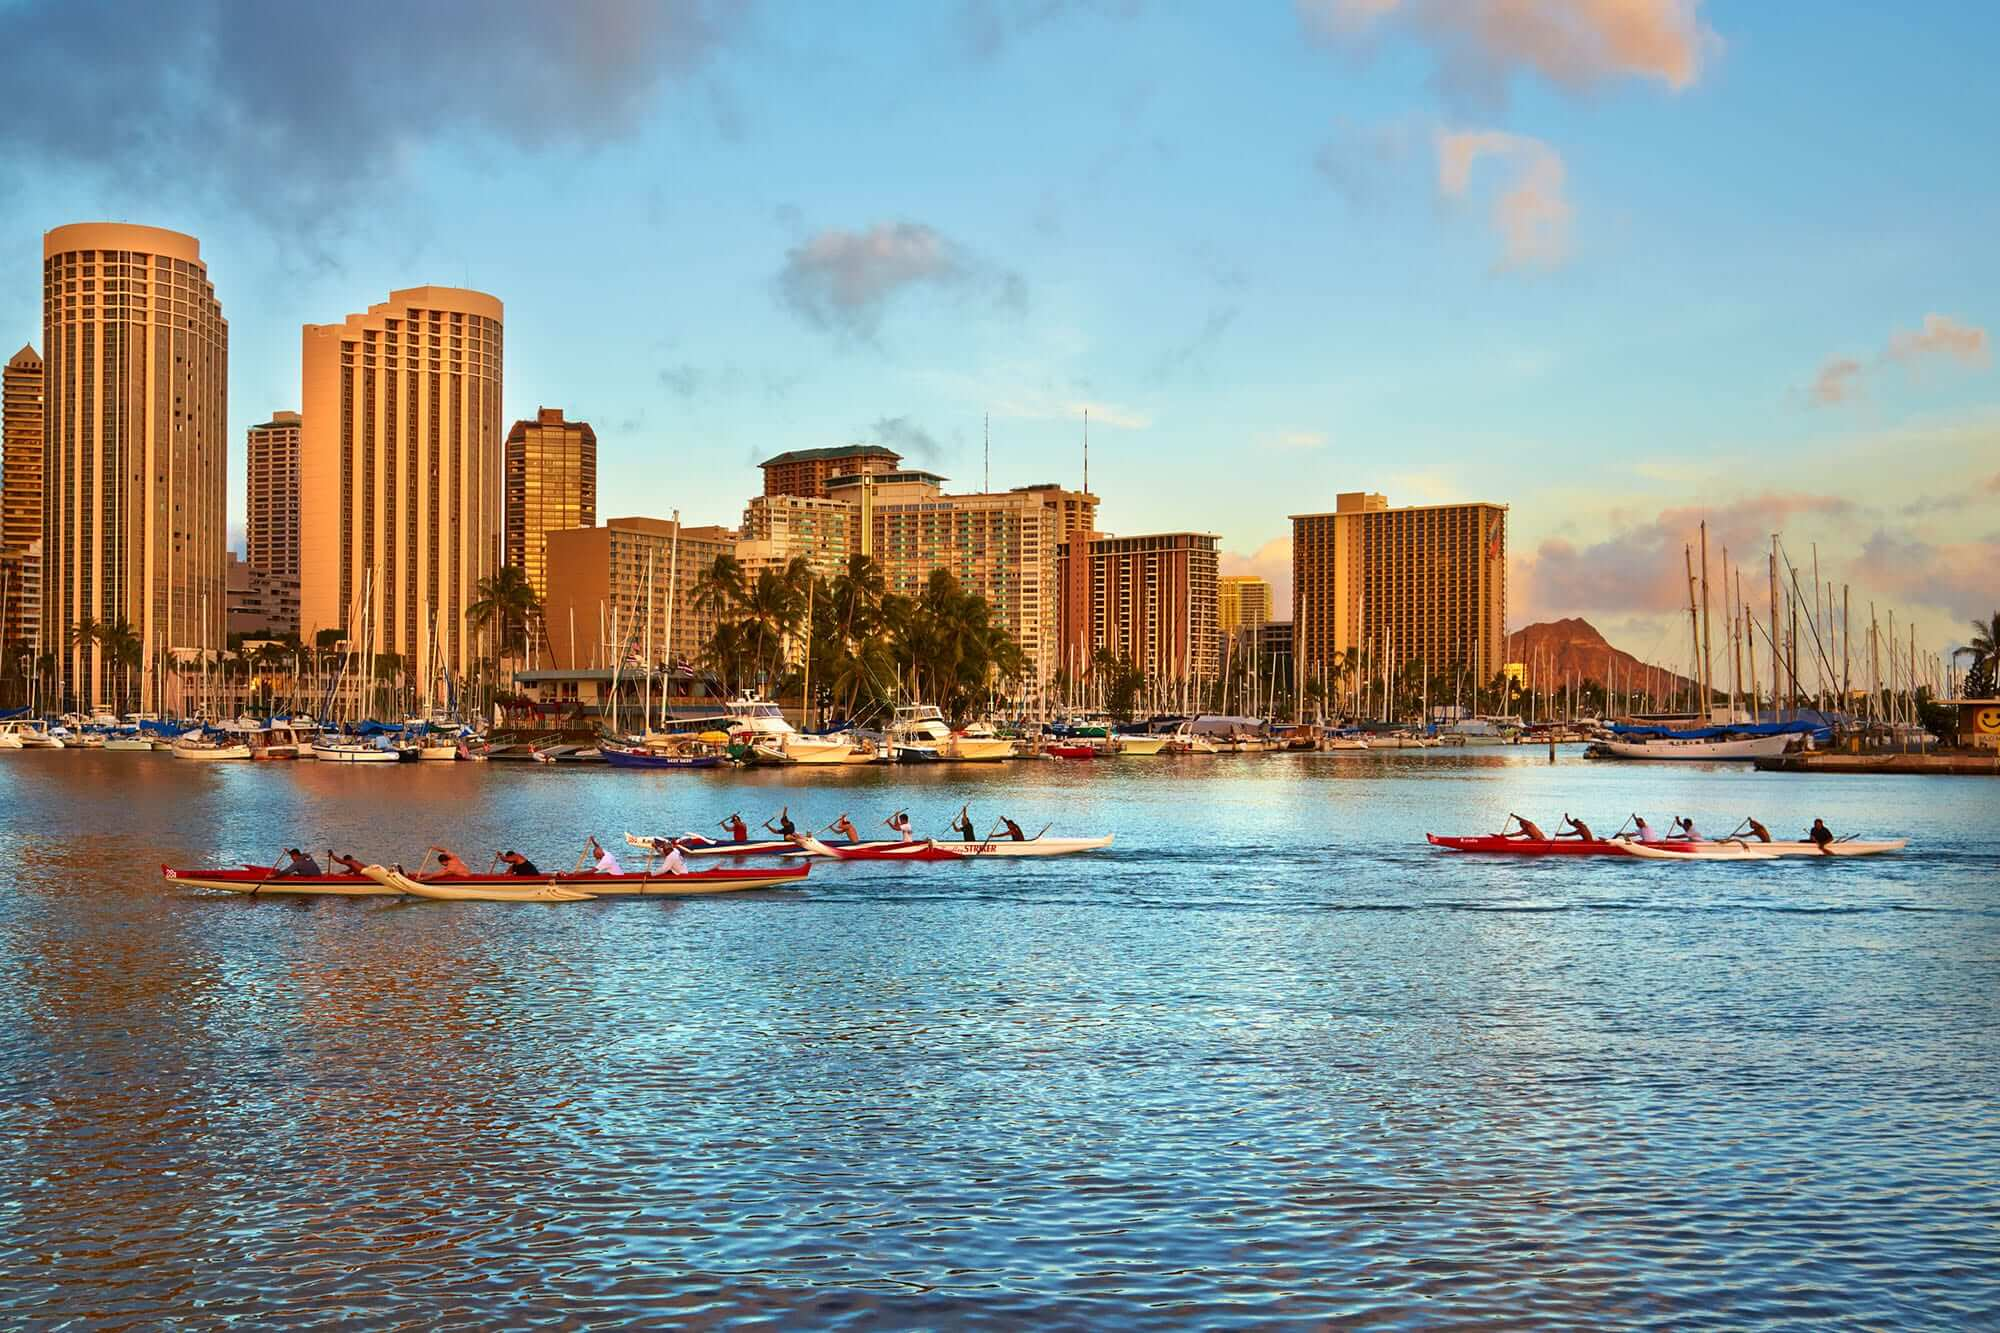 Outrigger boats traveling across the bay in front of Prince Waikiki.